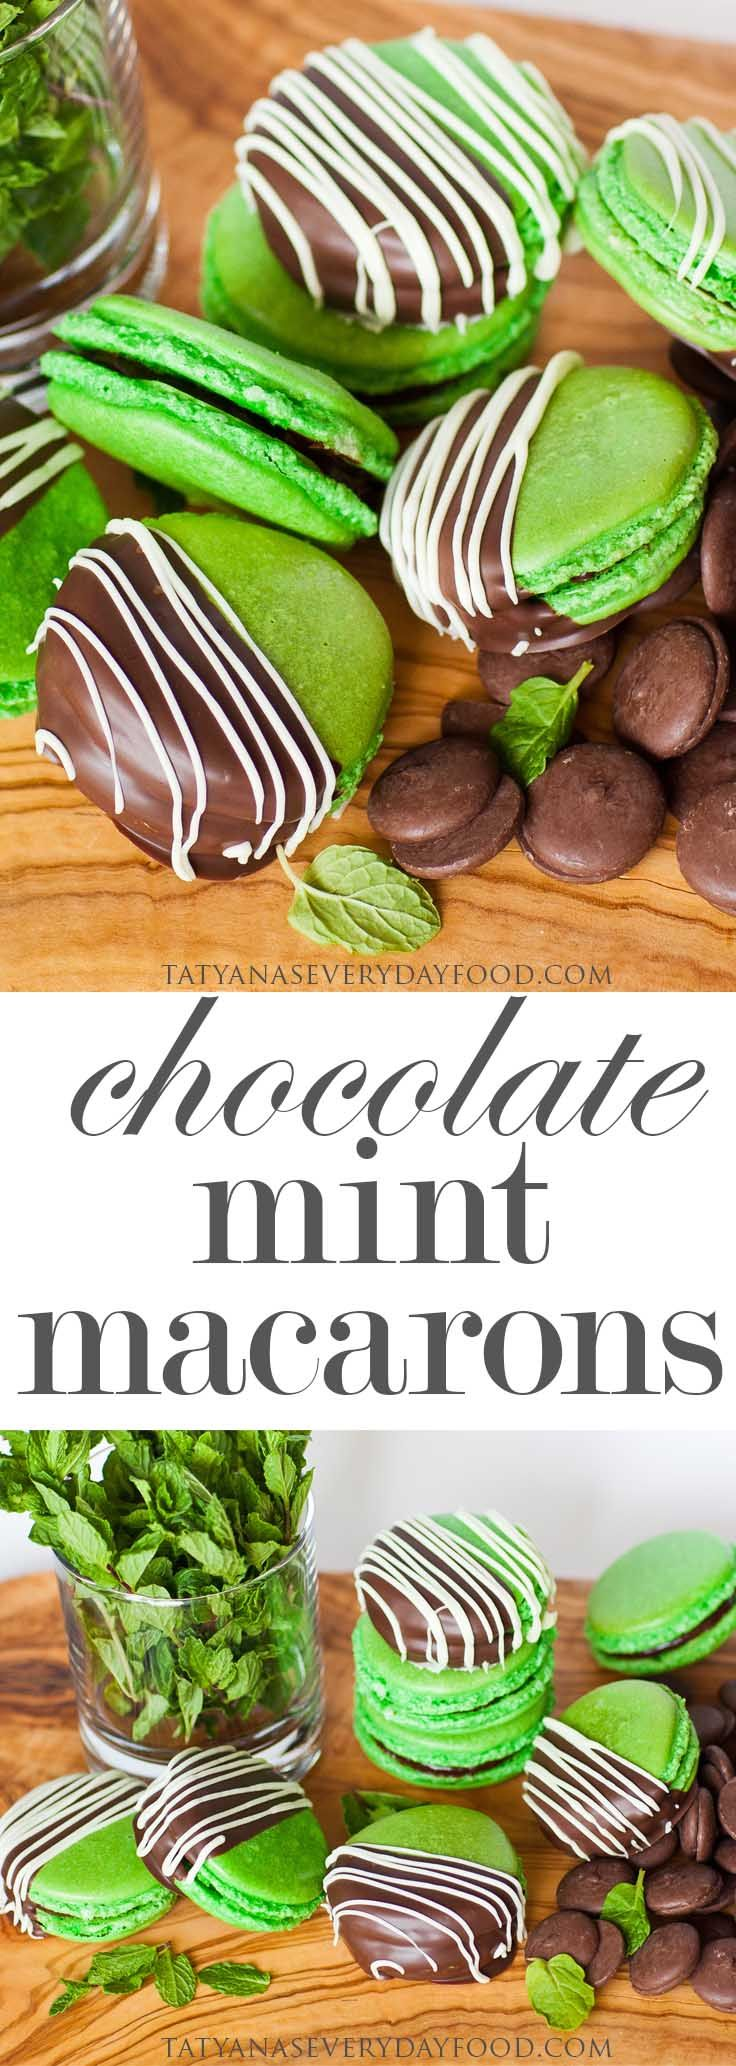 These delicate double chocolate and mint macarons are the perfect after-dinner treats! They taste just like After-Dinner Mints with refreshing mint and sweet chocolate. Make them a few days ahead of time and allow them to mature for the best results! Watch my video recipe for all the recipe details!